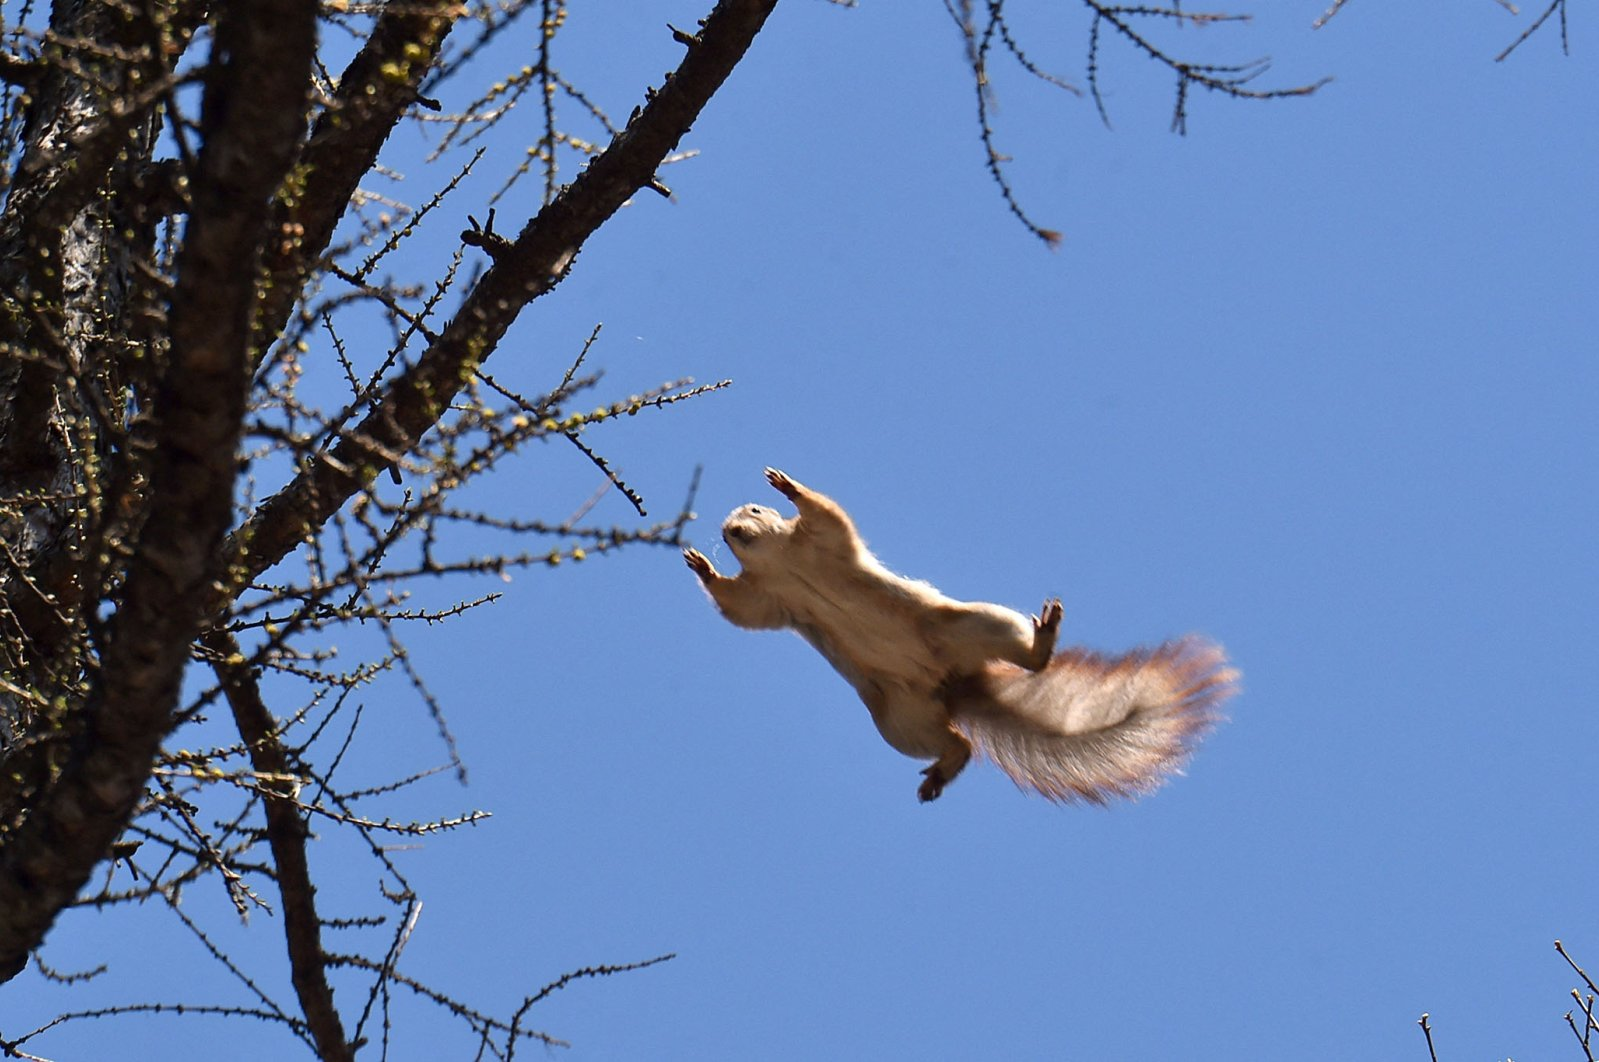 A squirrel jumps to a tree branch in Kiev, Ukraine, March 30, 2017. (AFP Photo)